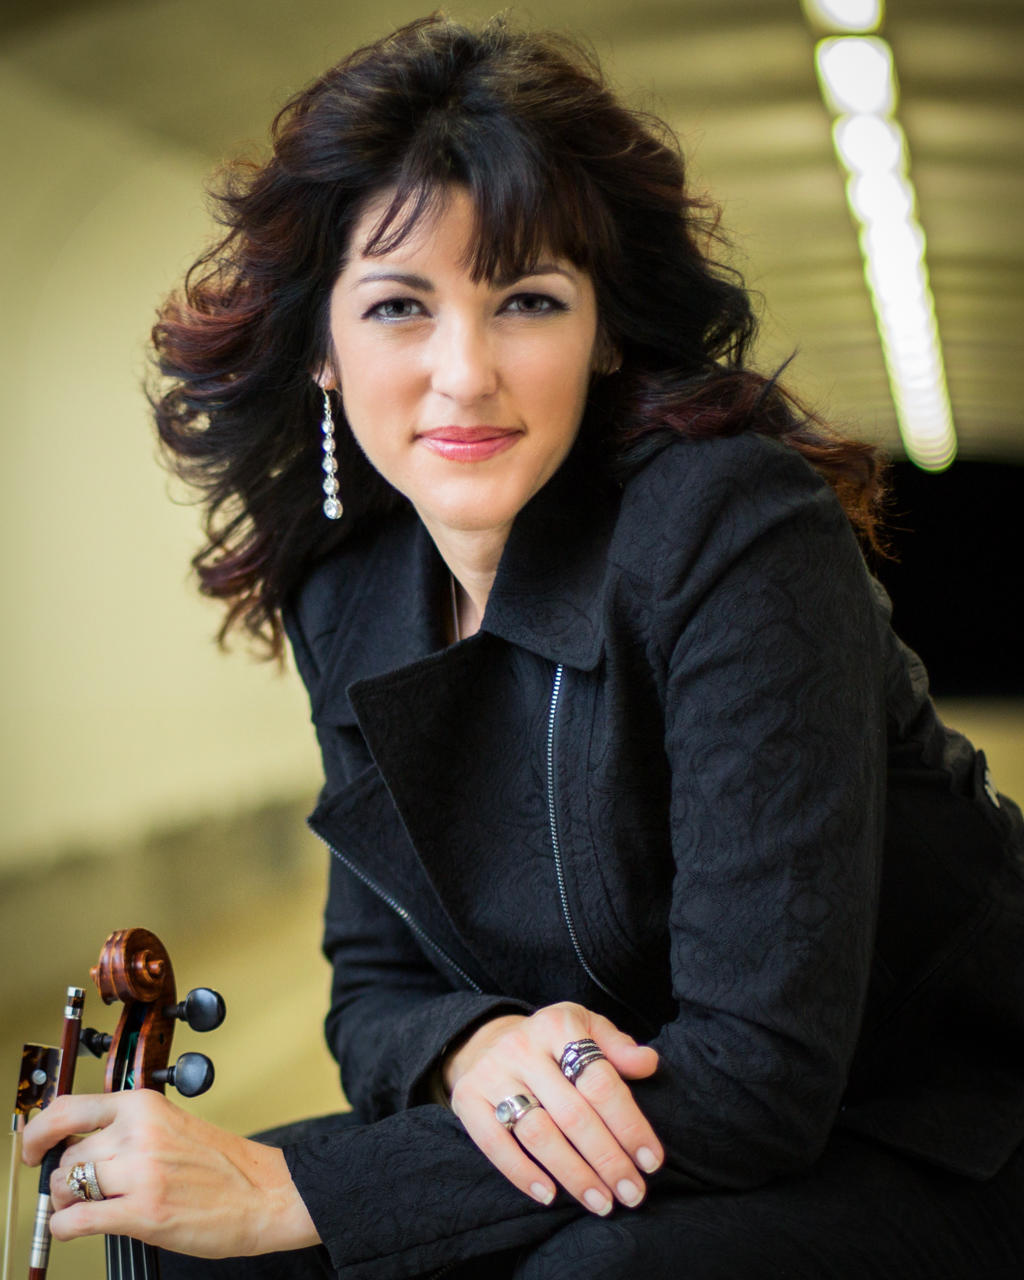 Lori Jean Smith - Renown Violinist